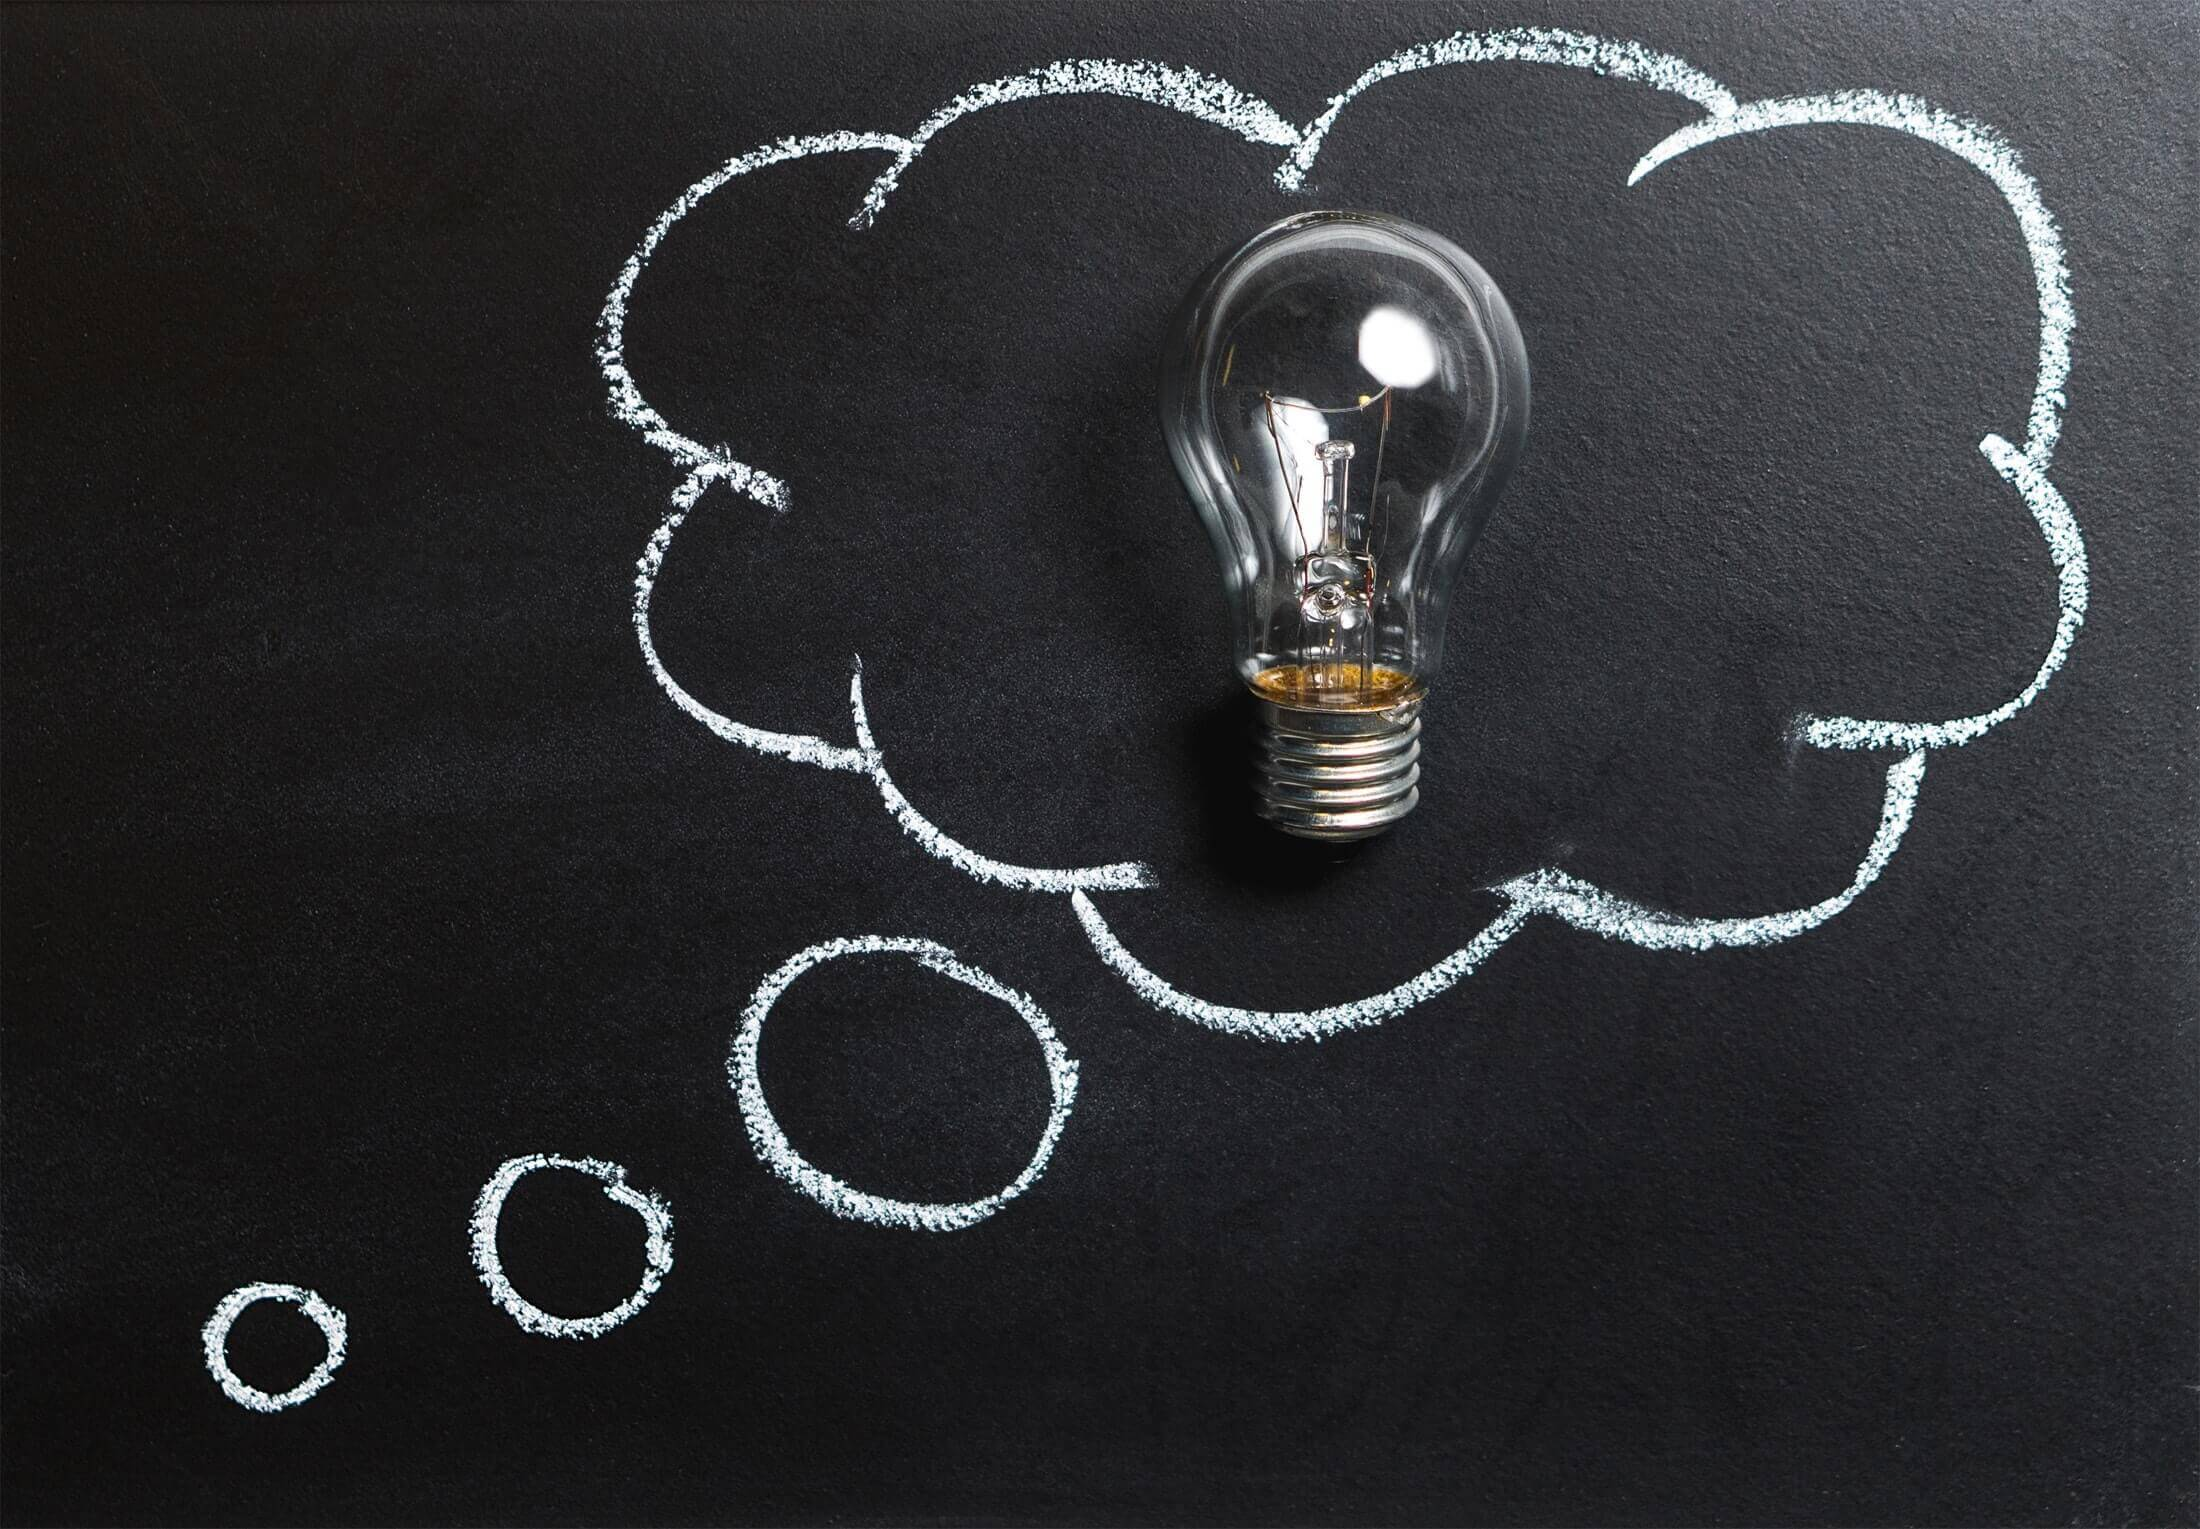 Light bulb on a blackboard with a thinking bubble drawn around it.